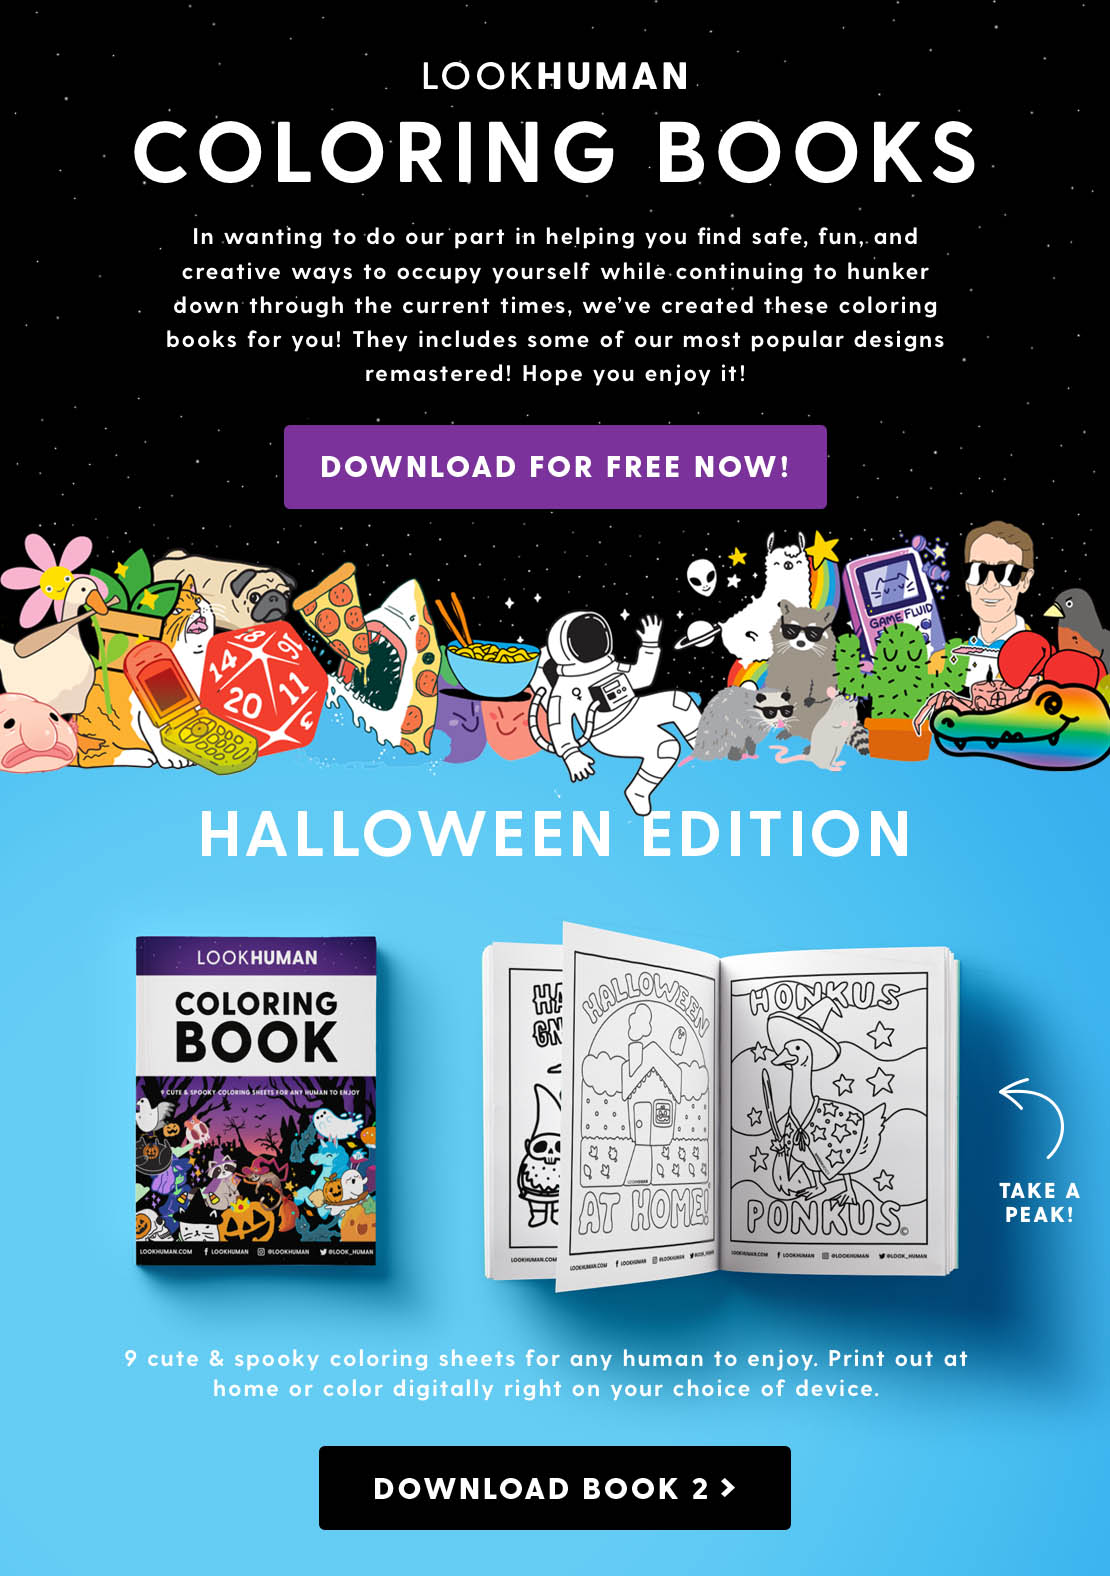 Download the Fall 2020 Coloring Book